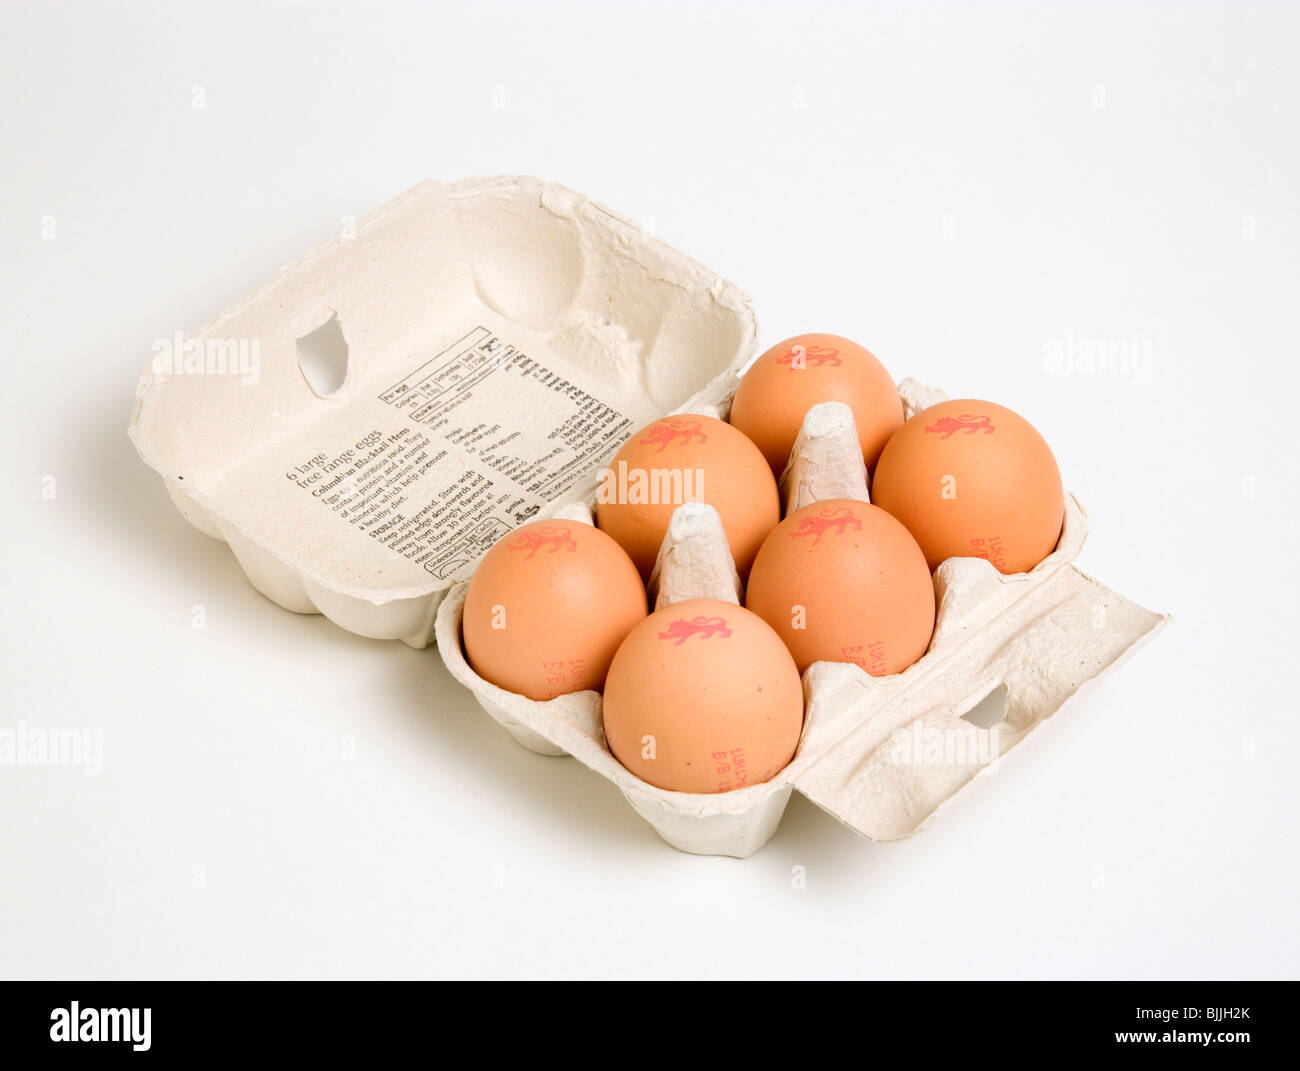 Food, Uncooked, Eggs, Box of six free range eggs with The Lion mark which denotes eggs produced to a stringent Code - Stock Image